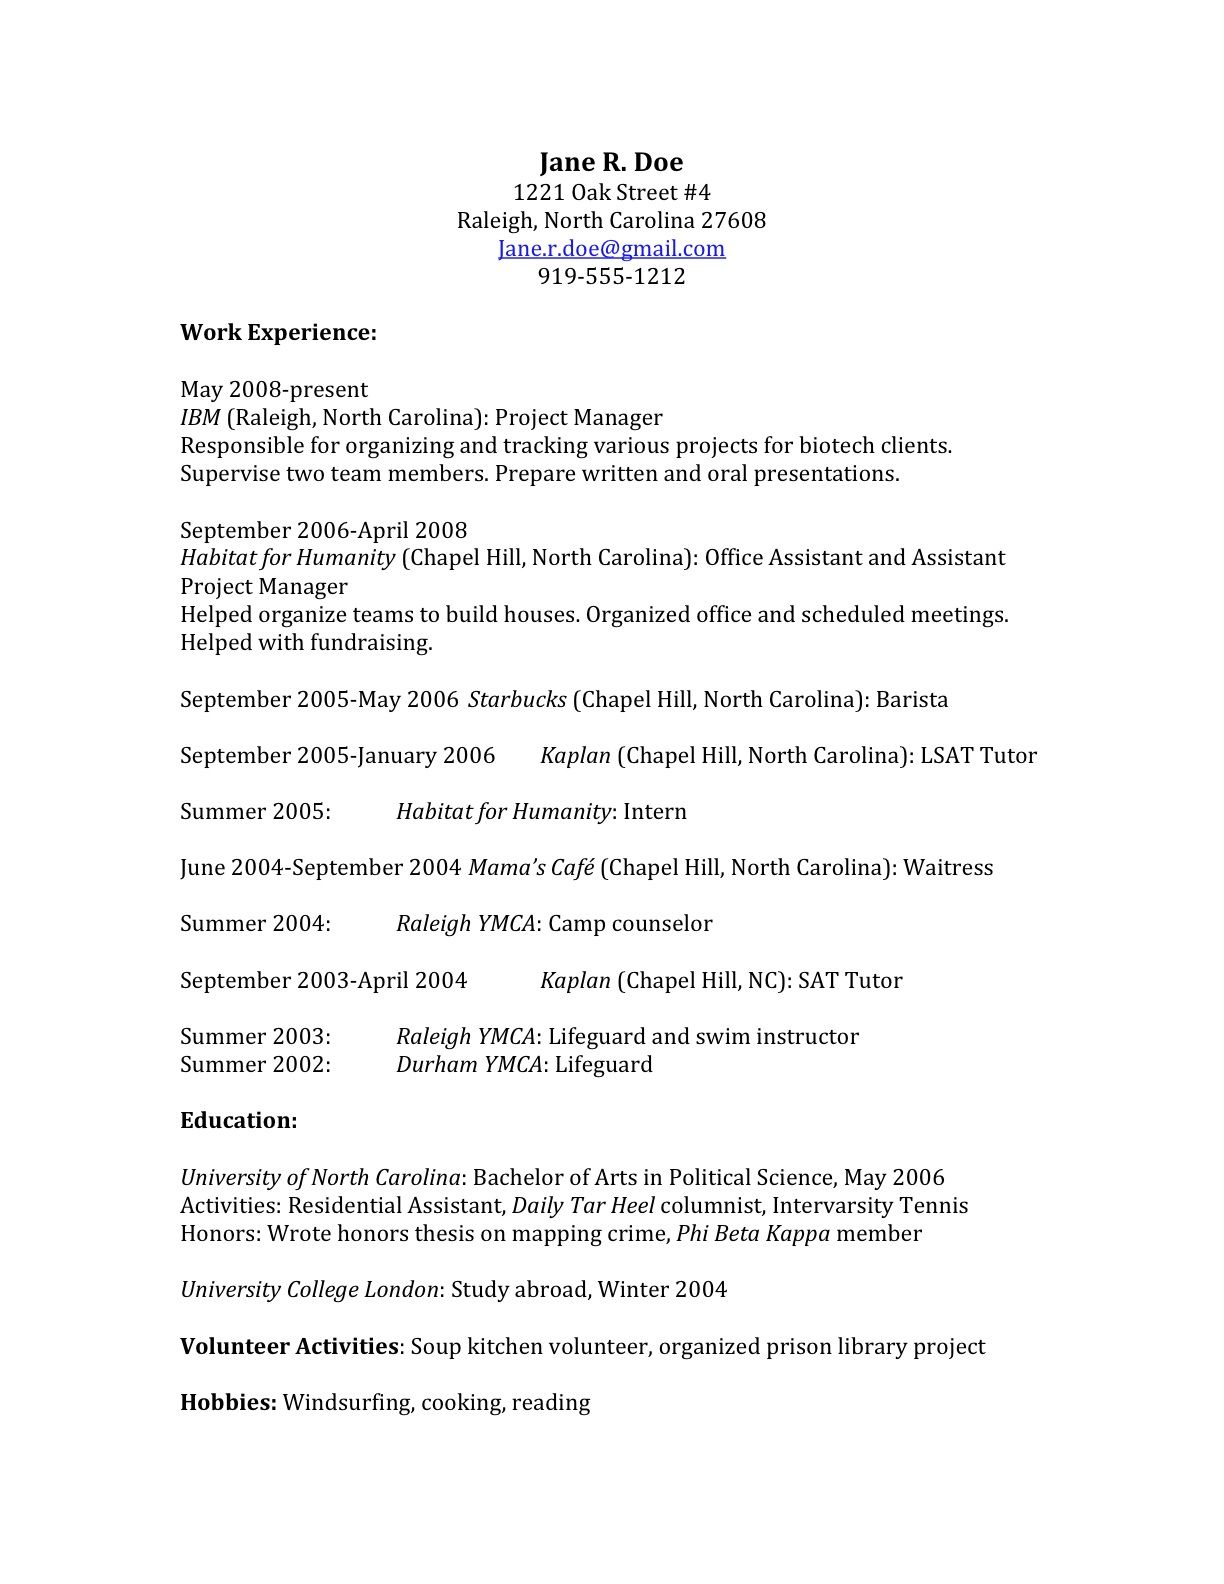 Nc School Counselor Cover Letter Resume How To Write An Application Letter For Volunteering